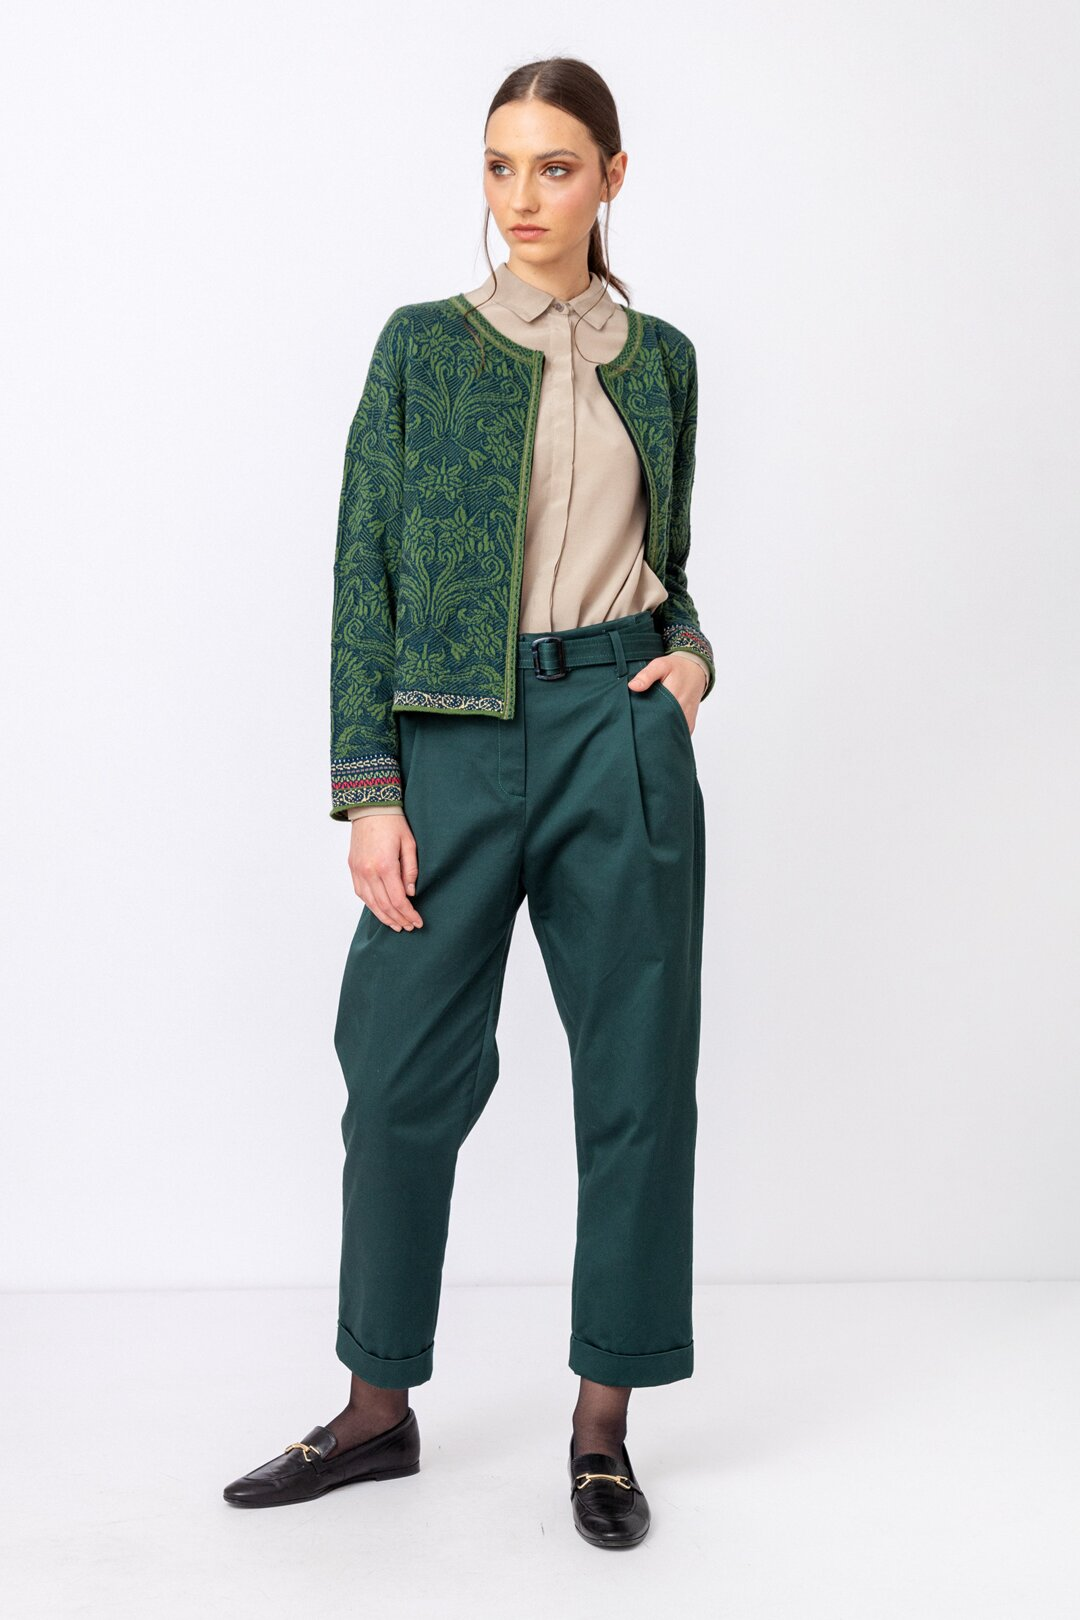 outfit-7c8a2609